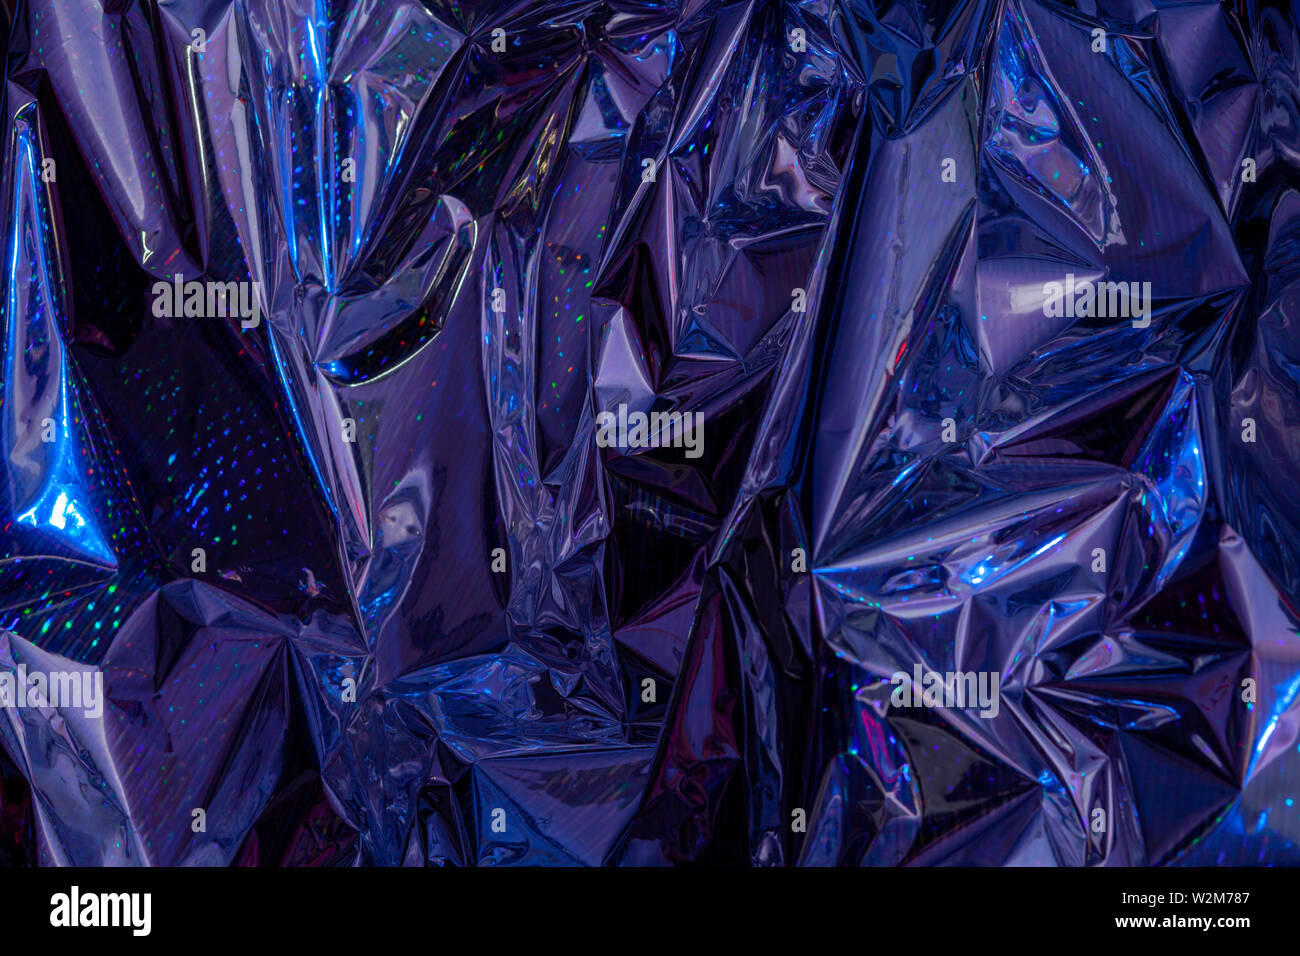 The background of crumpled holographic packaging film with an abstract pattern. Stock Photo